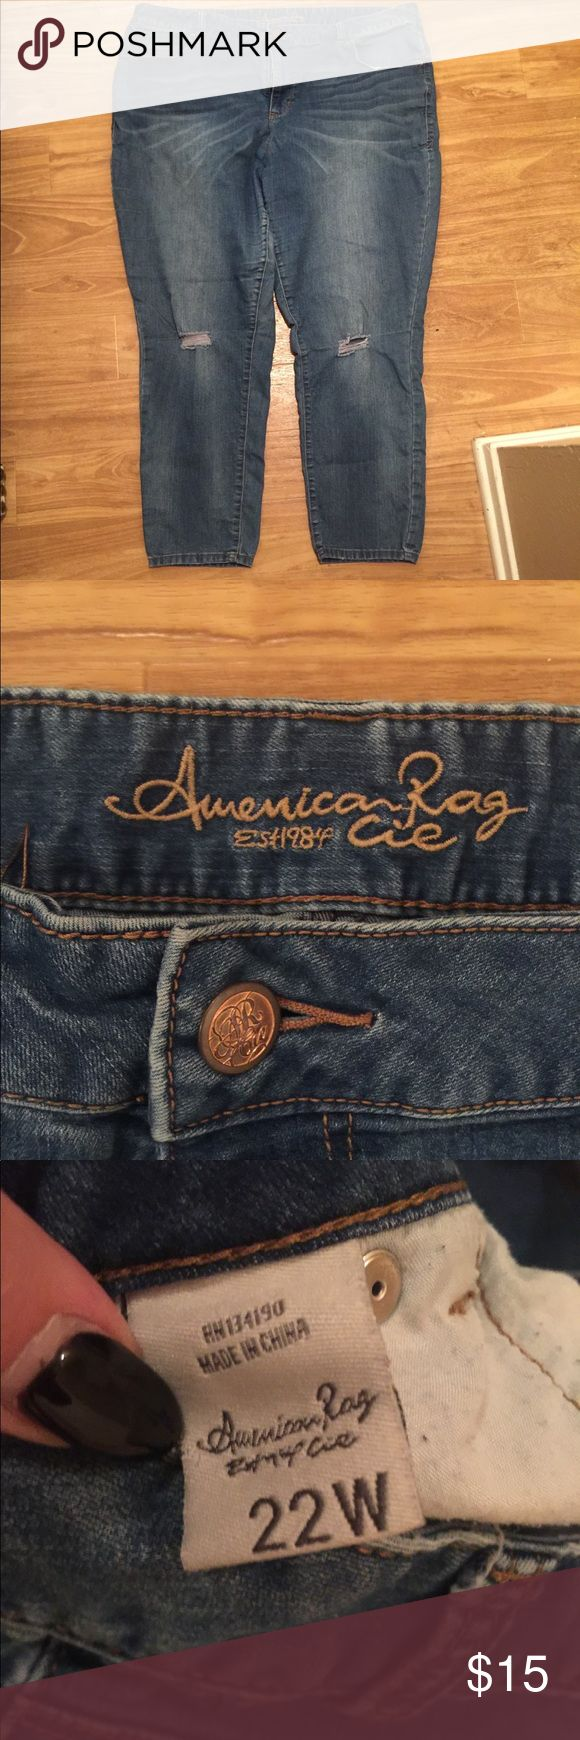 American Rag Jeans Super comfy and super soft denim! American Rag jeans with distressed knees in a size 22W   These jeans have been worn a handful of times and have a lot of wear left in them. I'm currently in a weight loss journey and am going through a TON of clothes, a lot of them is excellent condition! American Rag Jeans